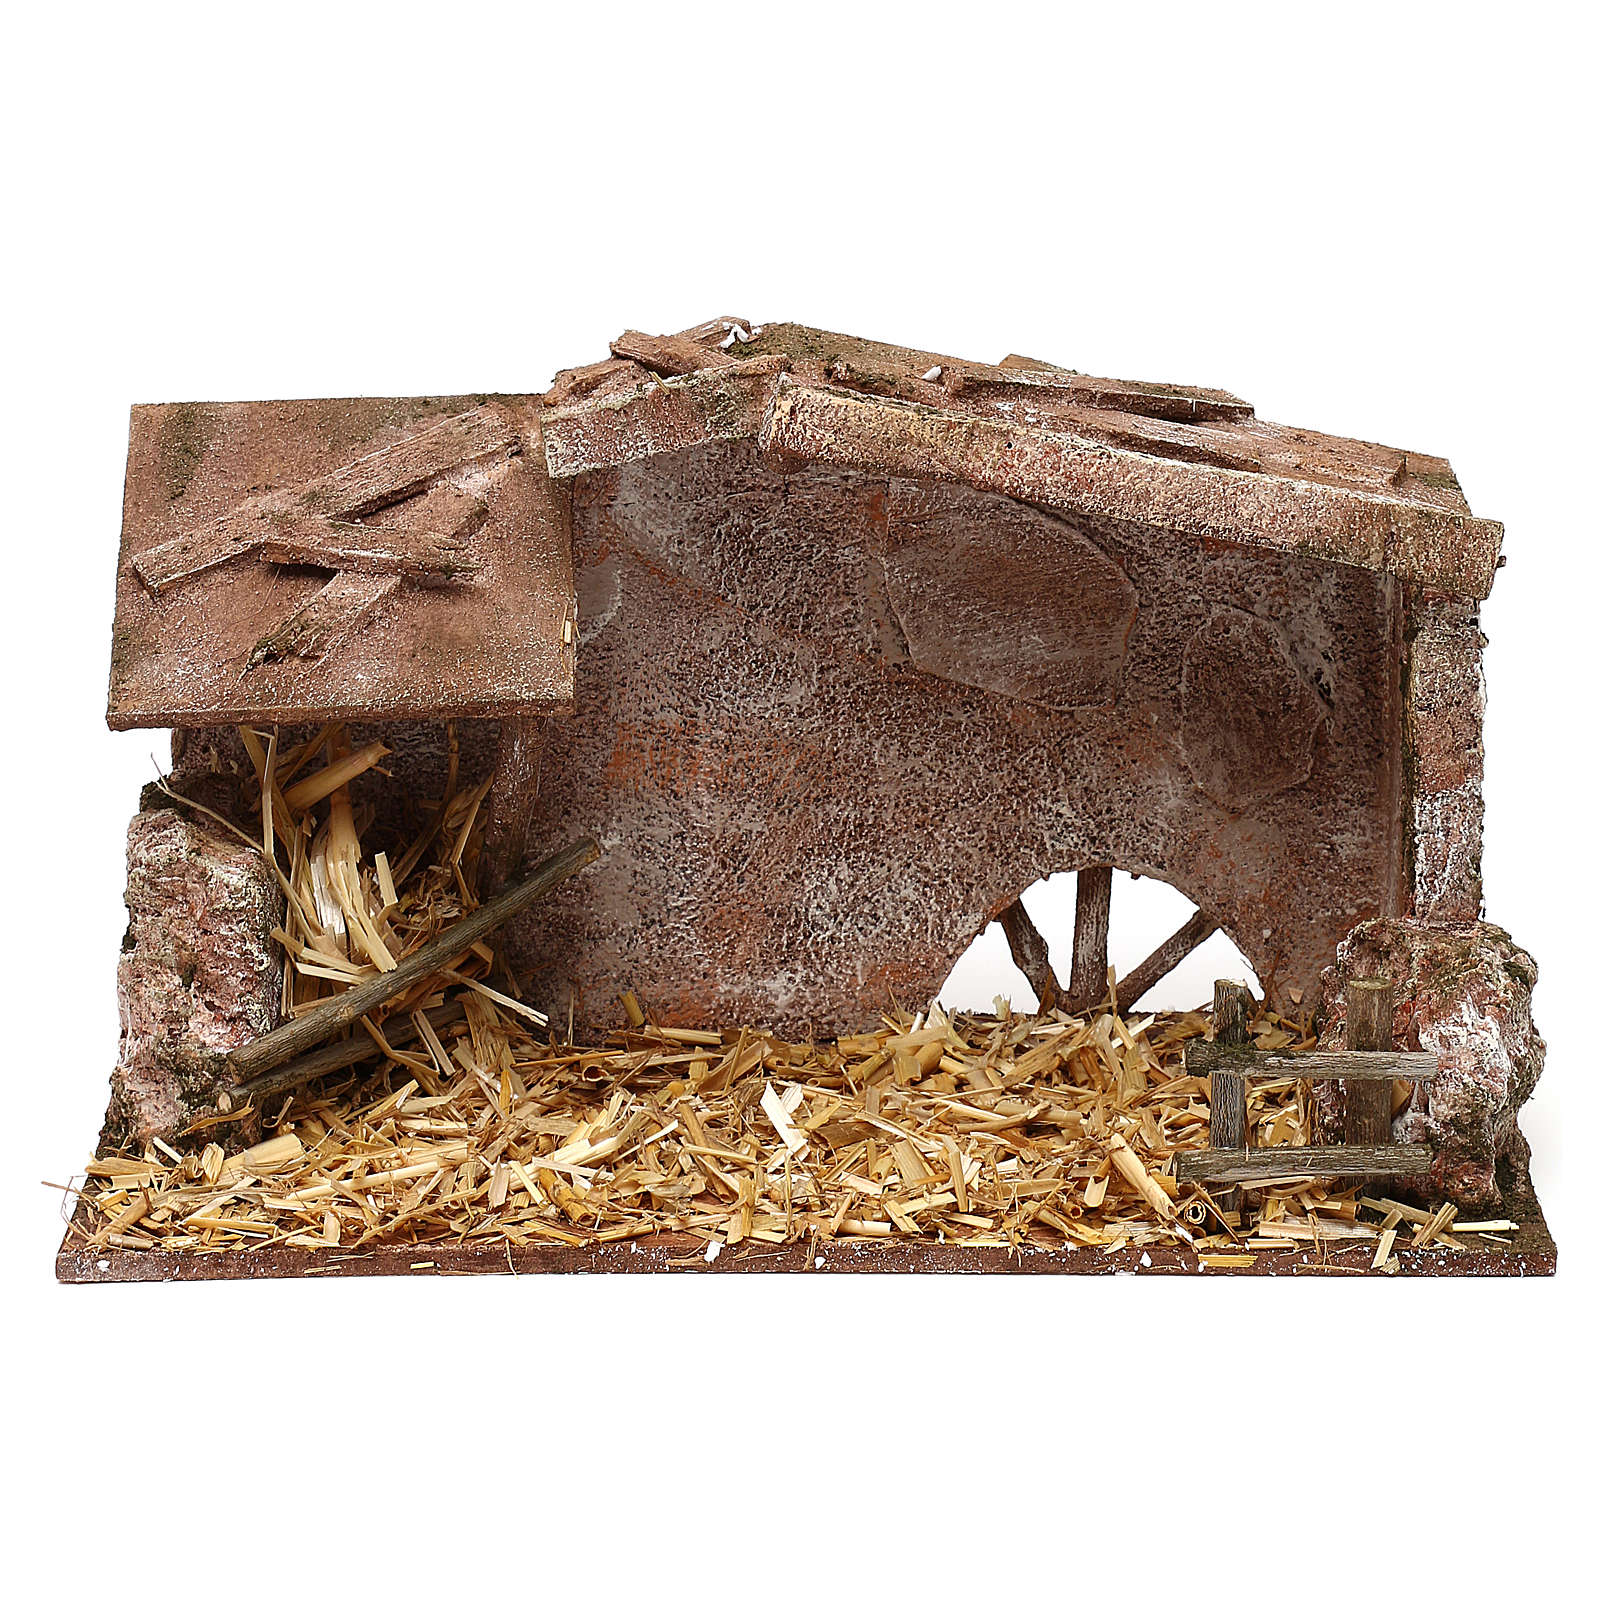 Shack with manger and straw for 10 cm Nativity scene, 15x25x15 cm 4